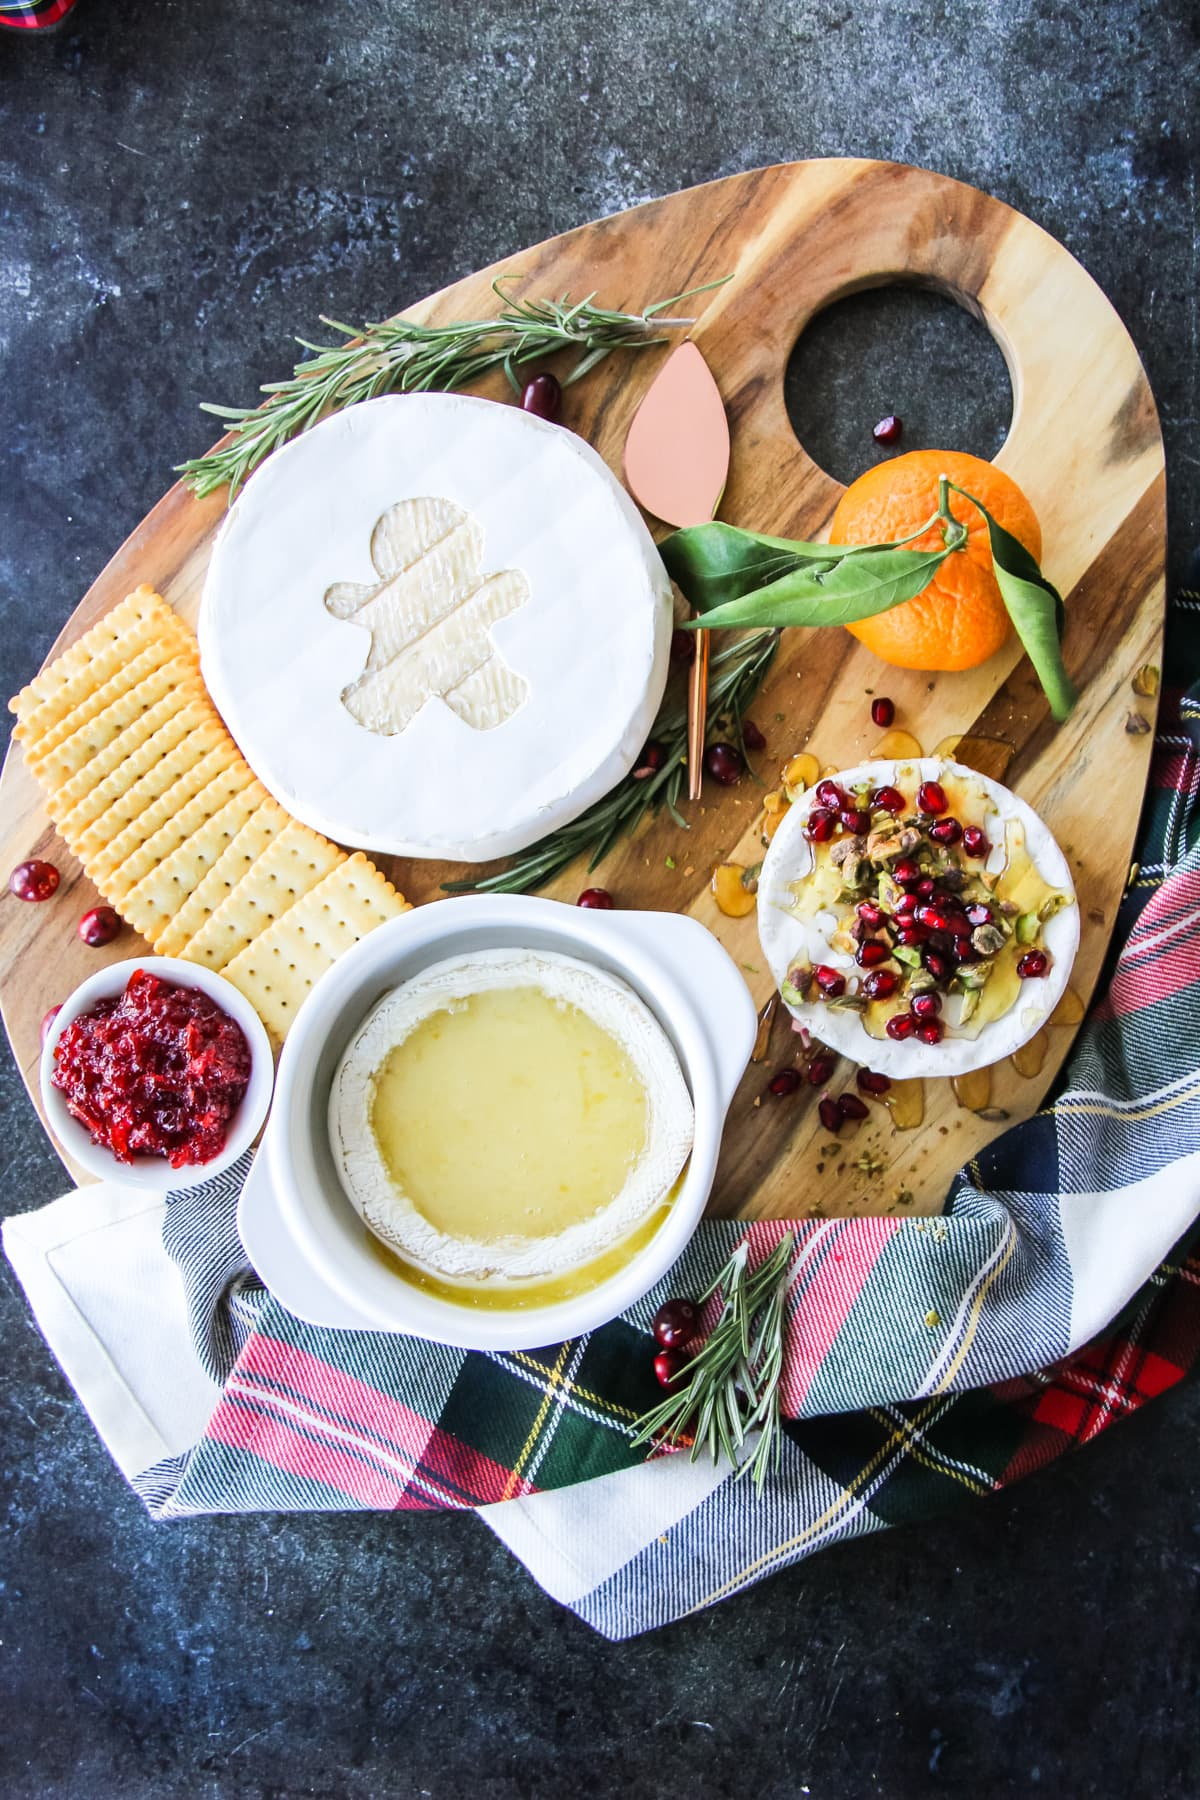 a wooden board with Christmas Appetizers like Brie, crackers and marmalade